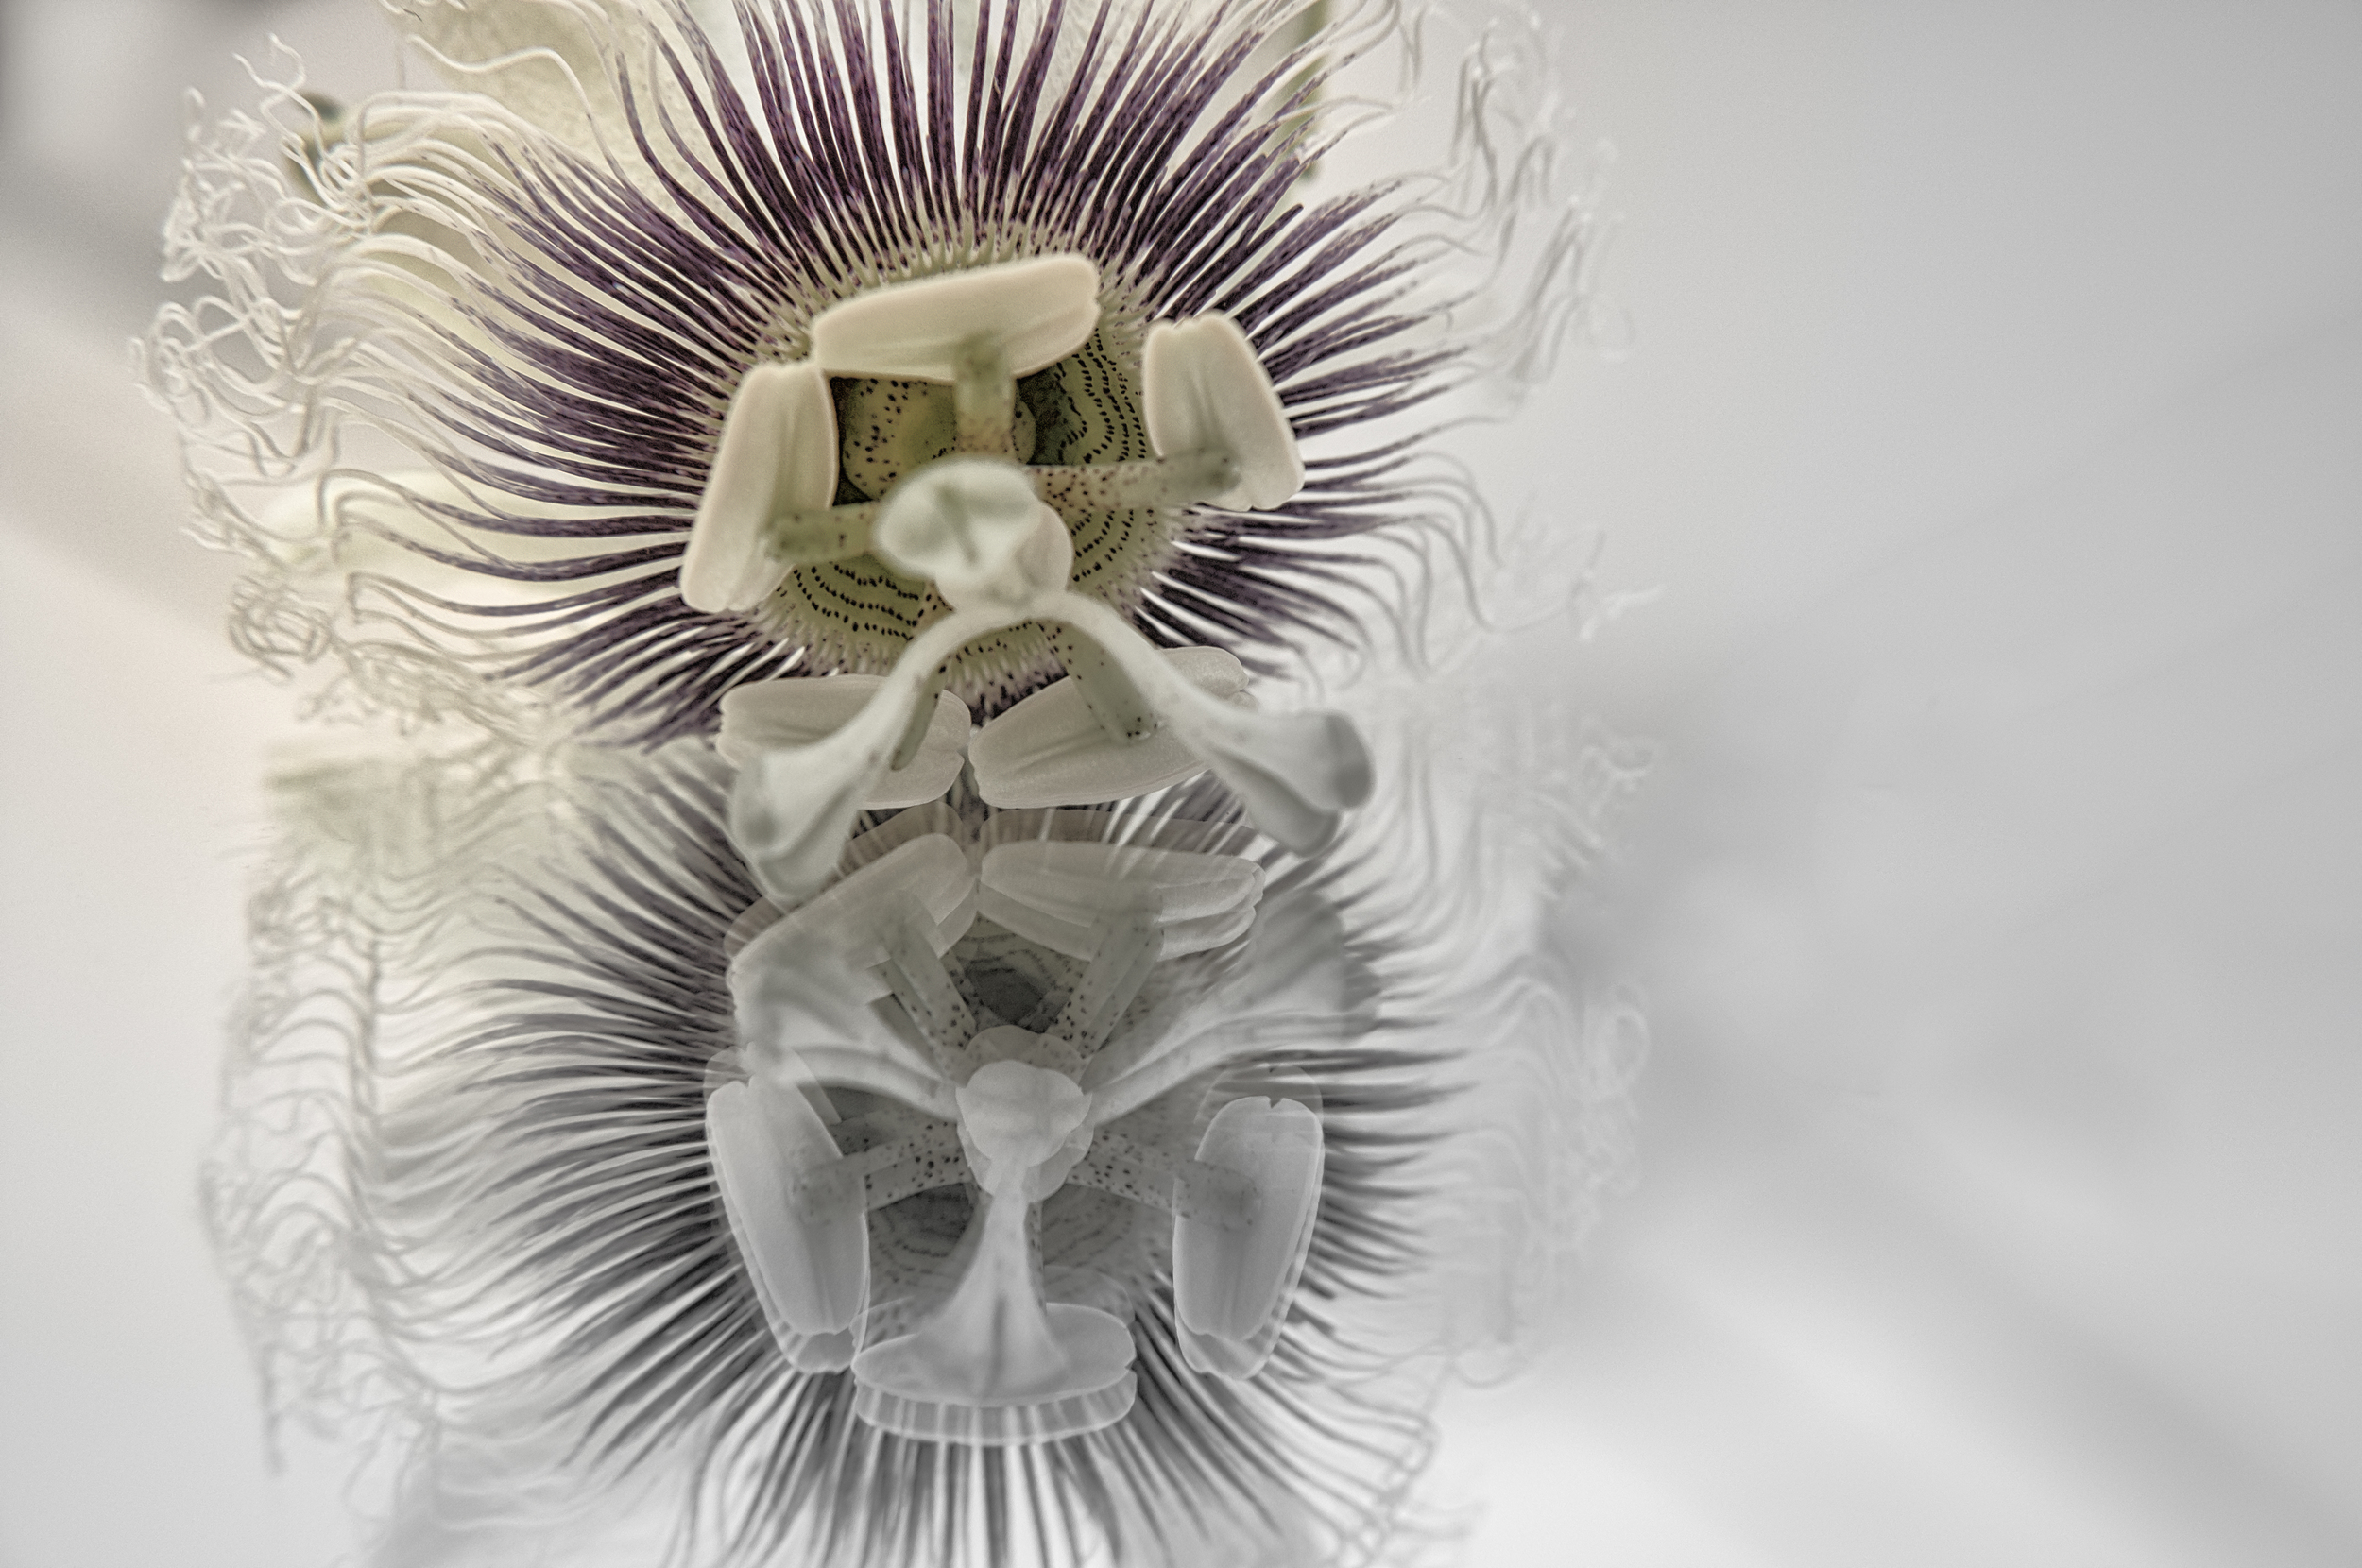 The kiss - A passion fruit flower reflected